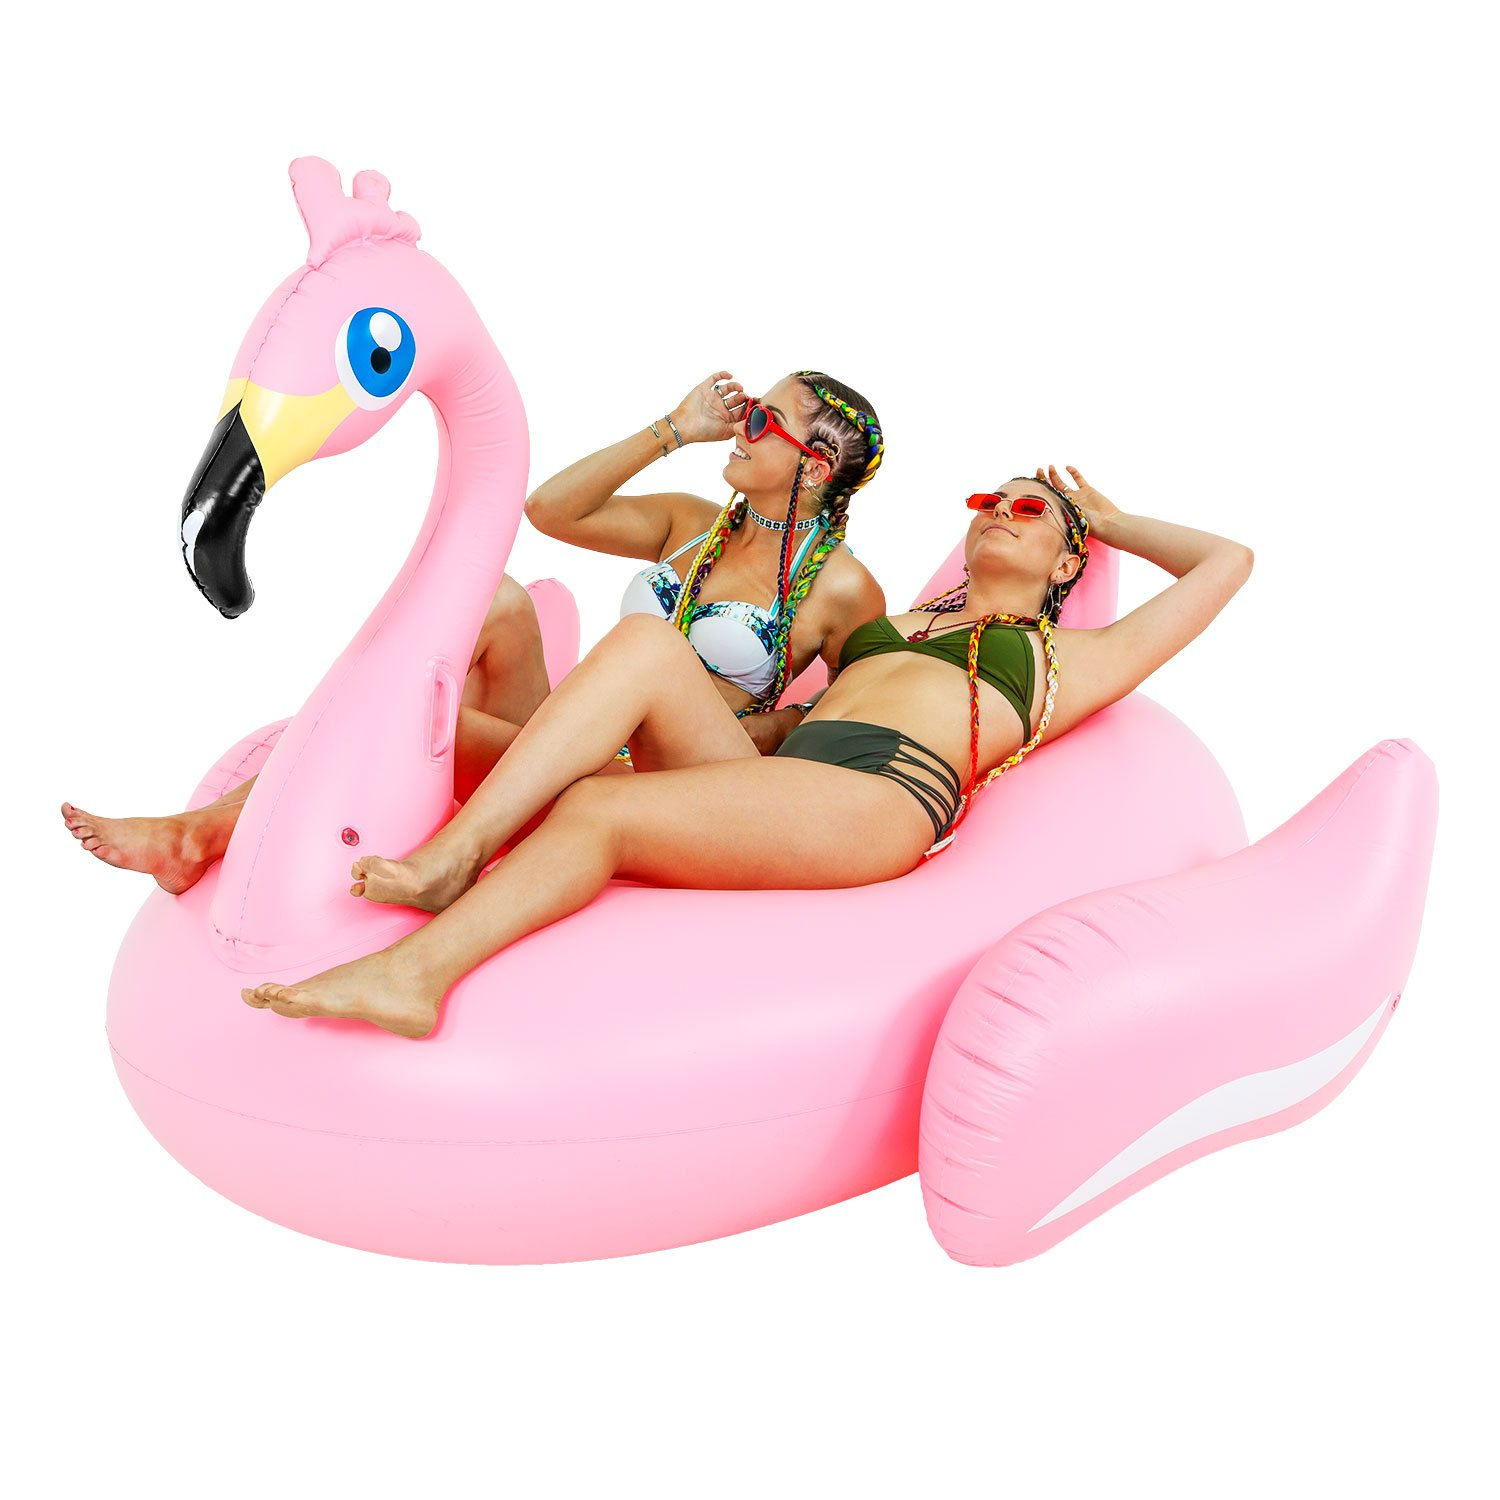 TCP Global Sundaze Floats Giant 7 Foot Inflatable Pretty in Pink Flamingo Pool Float - Fun Kids Swim Party Toy - Summer Lounge Raft by TCP Global